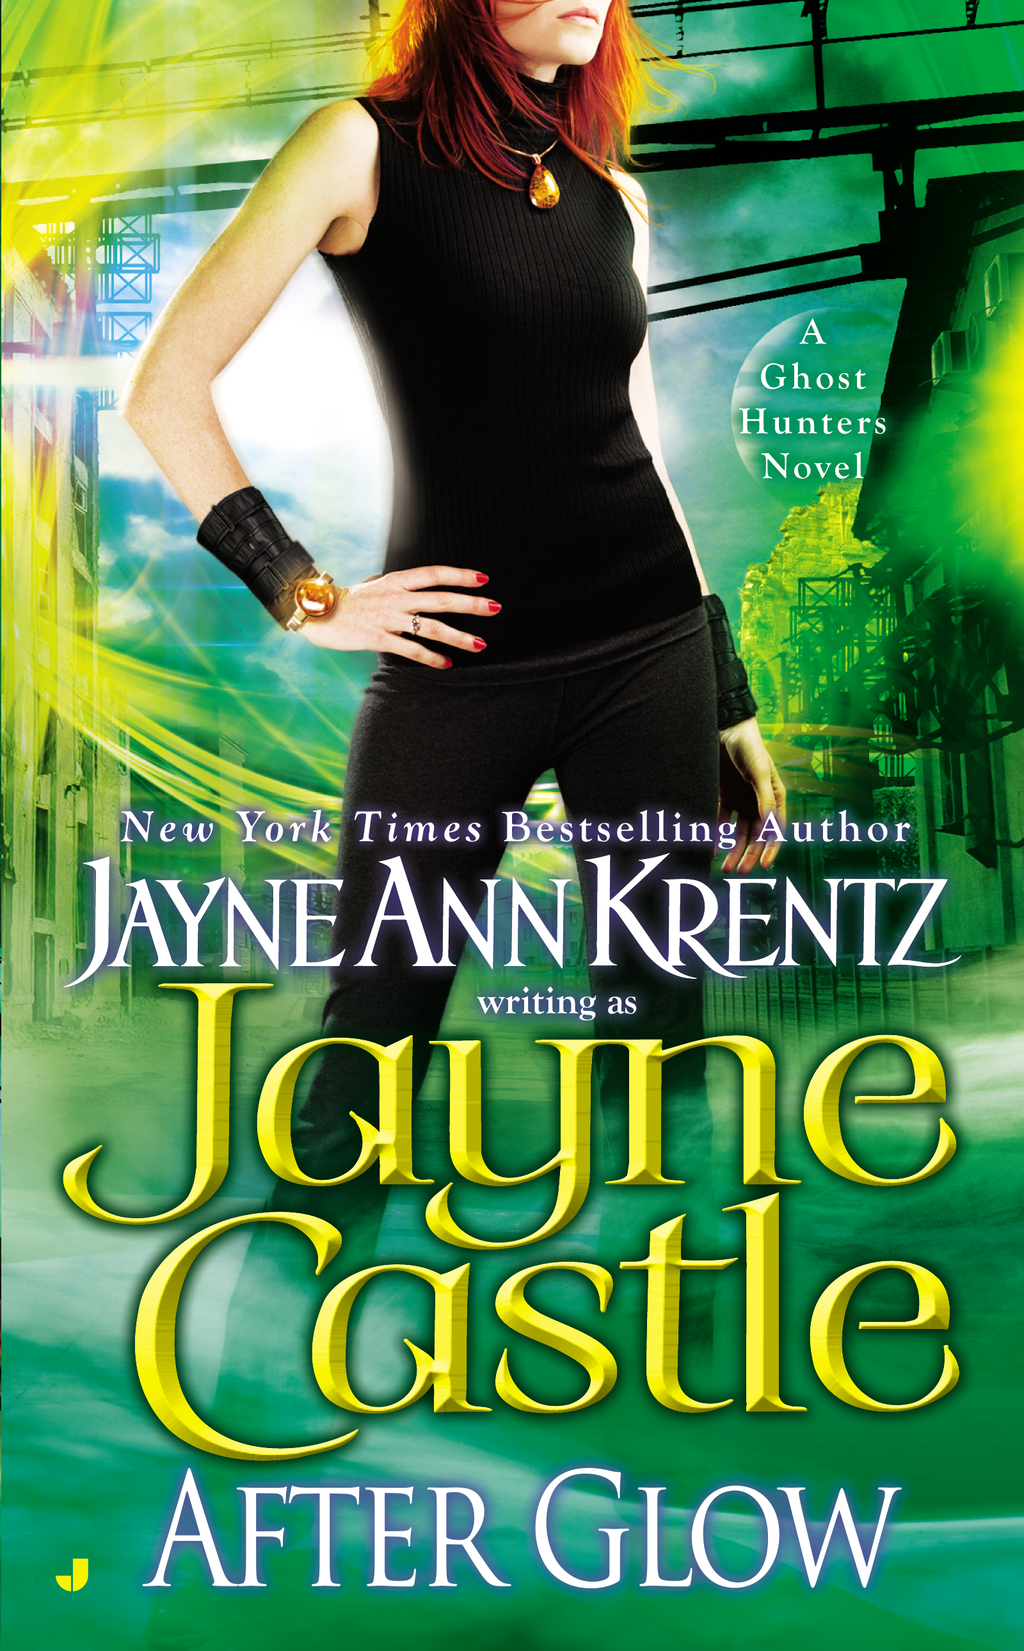 After Glow By: Jayne Castle